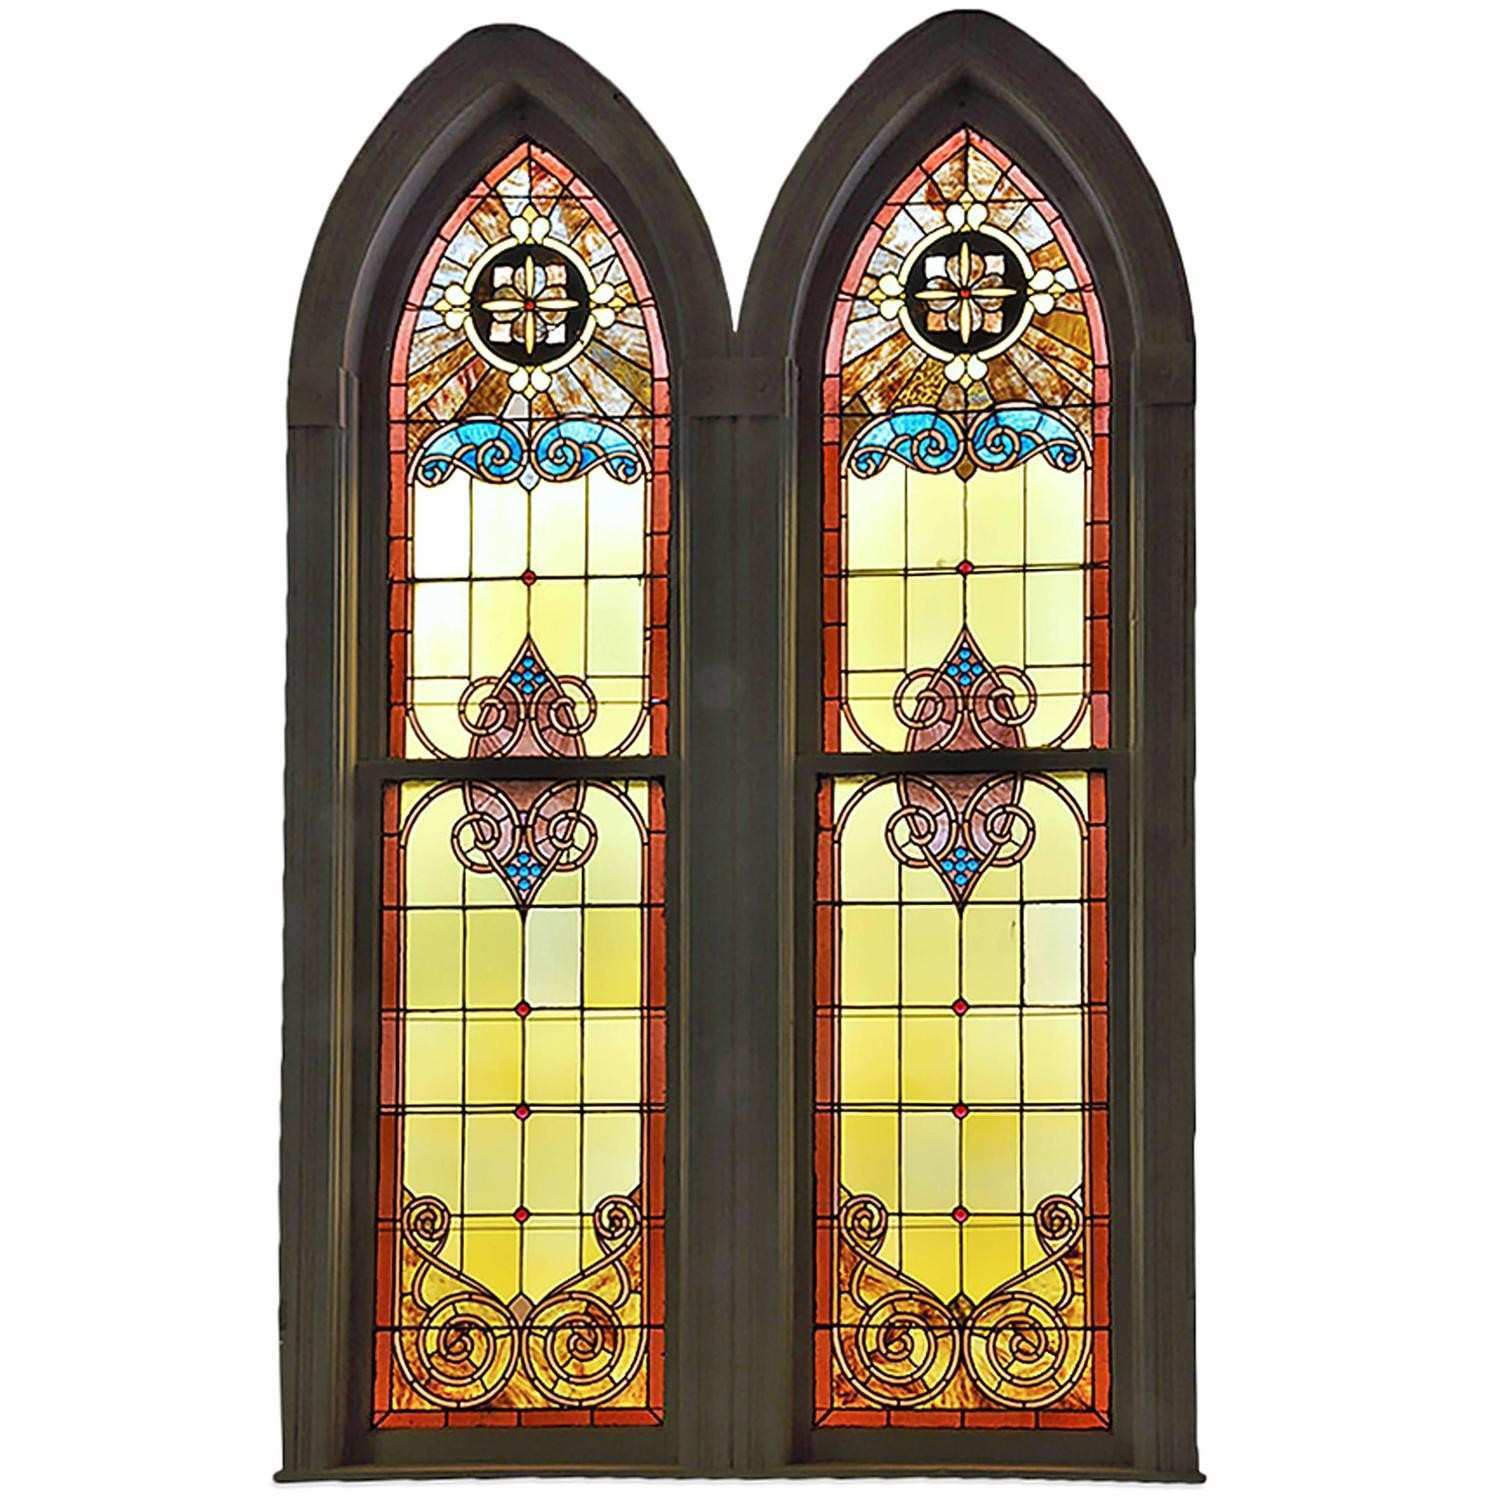 Stained Glass Windows 74 For Sale at 1stdibs